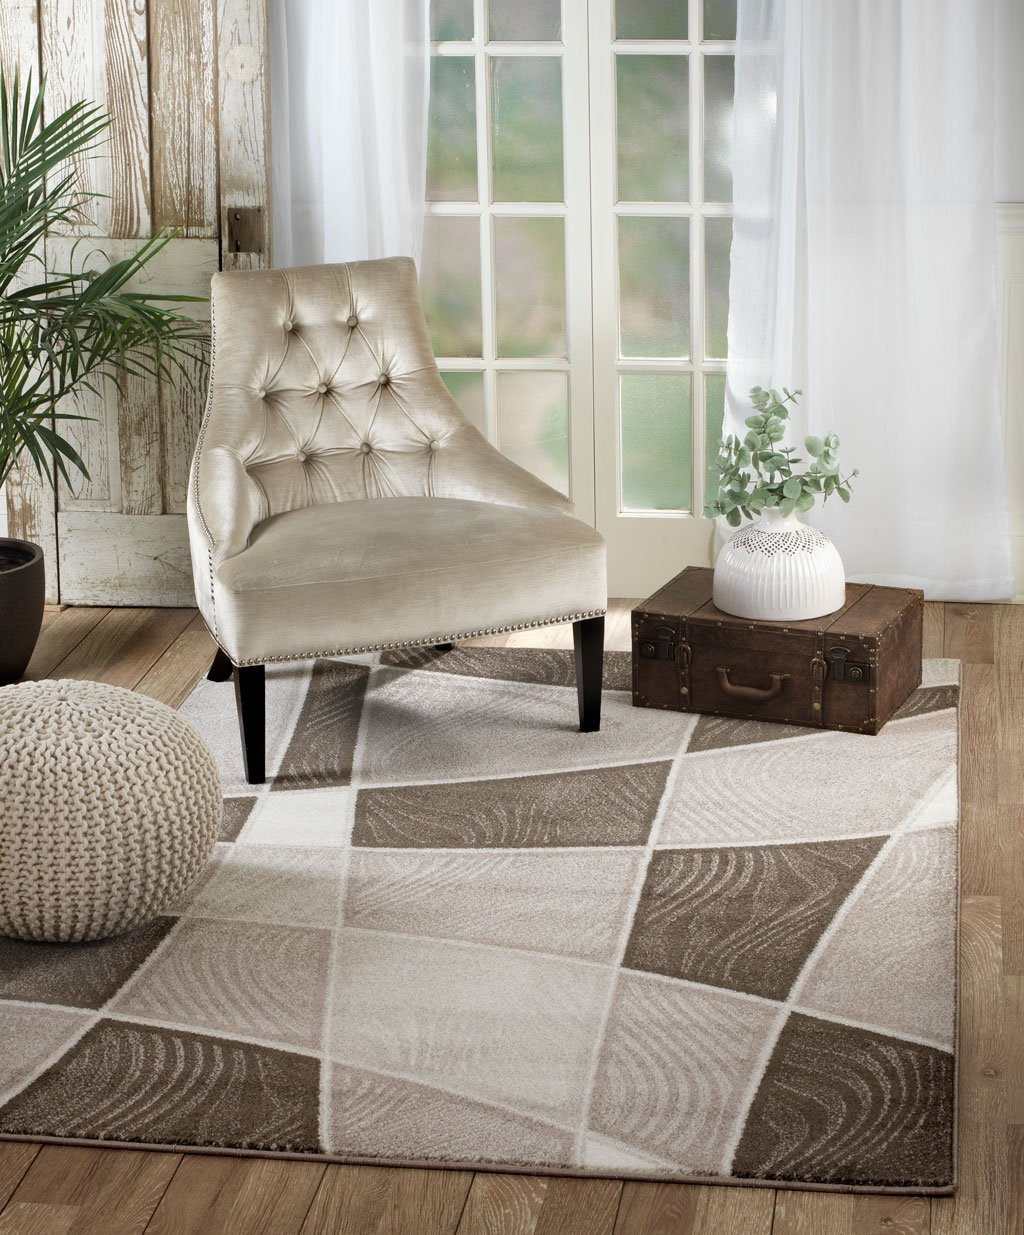 Rio Summit 303 Taupe Brown Area Rug Modern Abstract Many Sizes Available 3 .6 x 5 , 3 .6 x 5